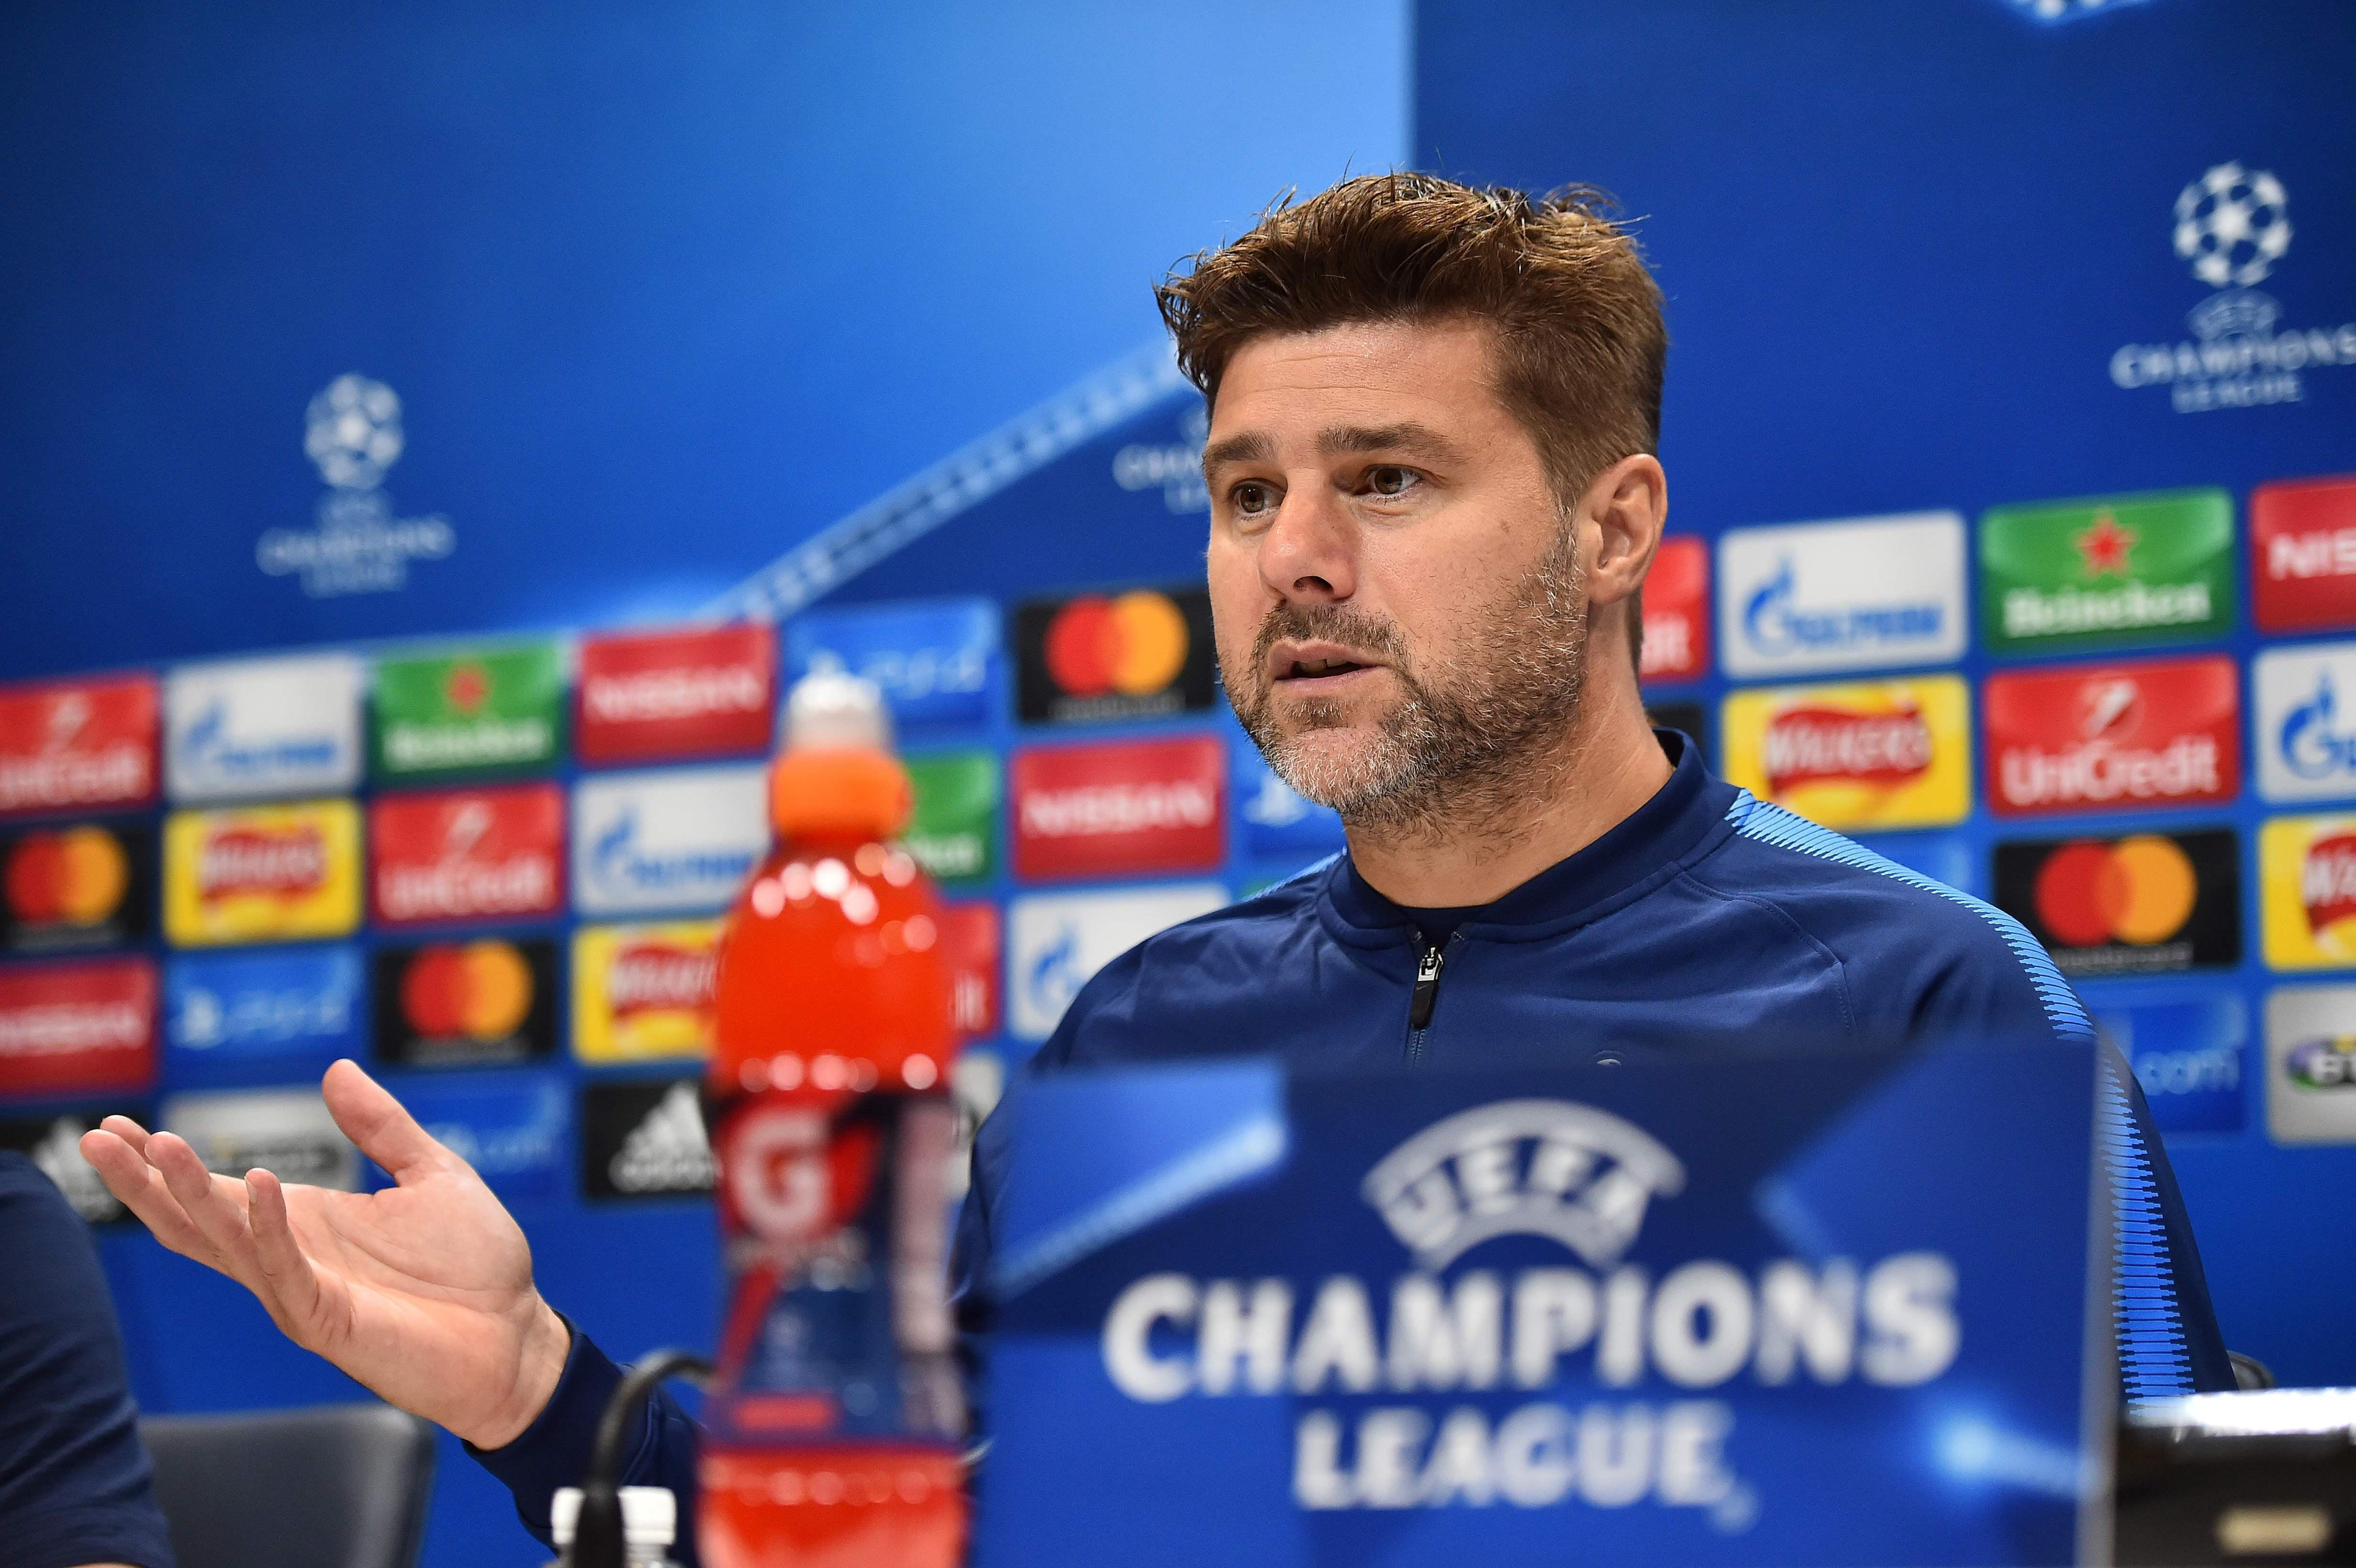 Pochettino and Spurs will be hoping to put it right this season